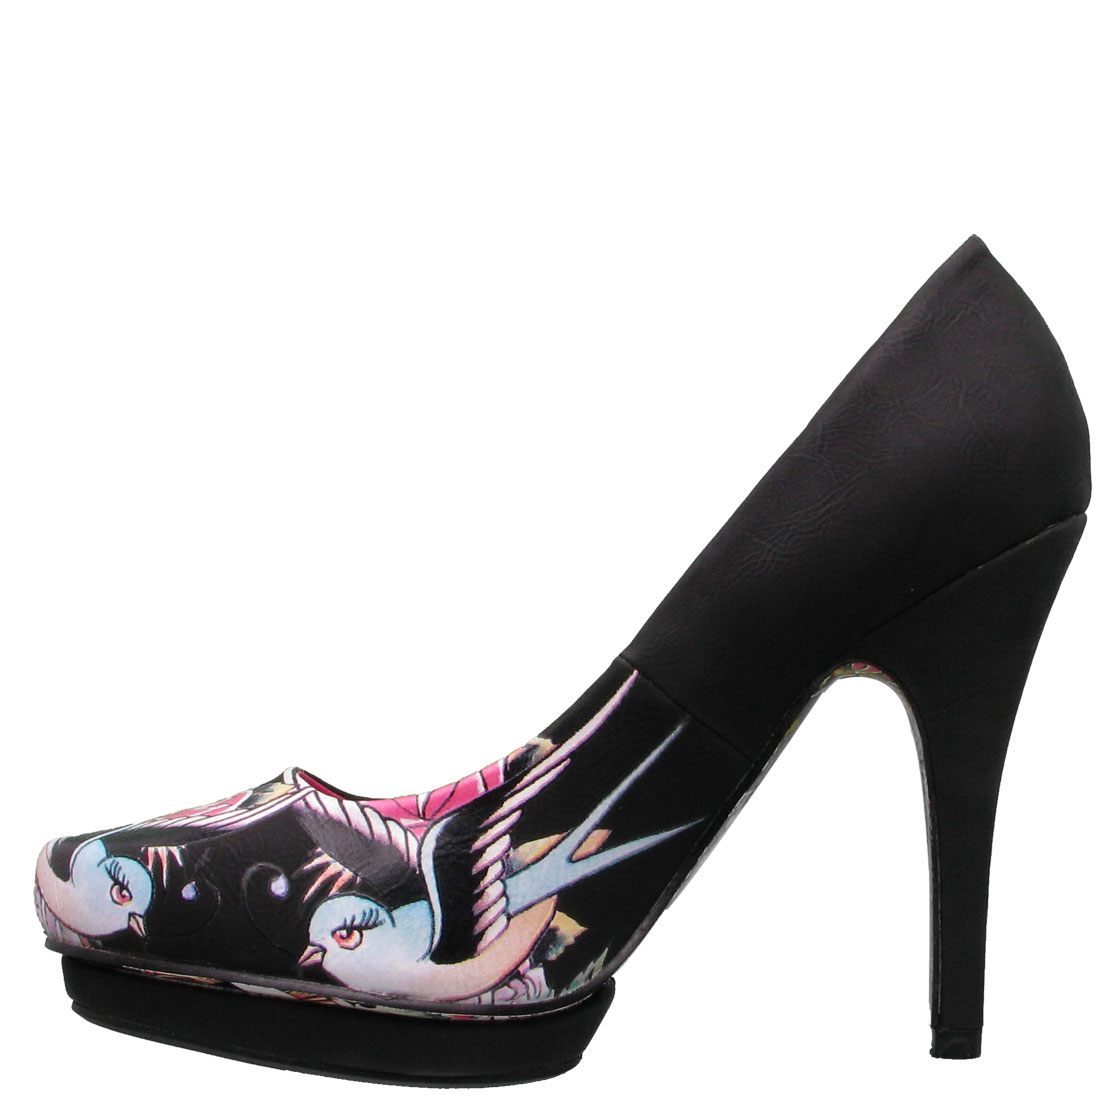 Ed Hardy Dirty Gold Pump Shoe for Women - Black